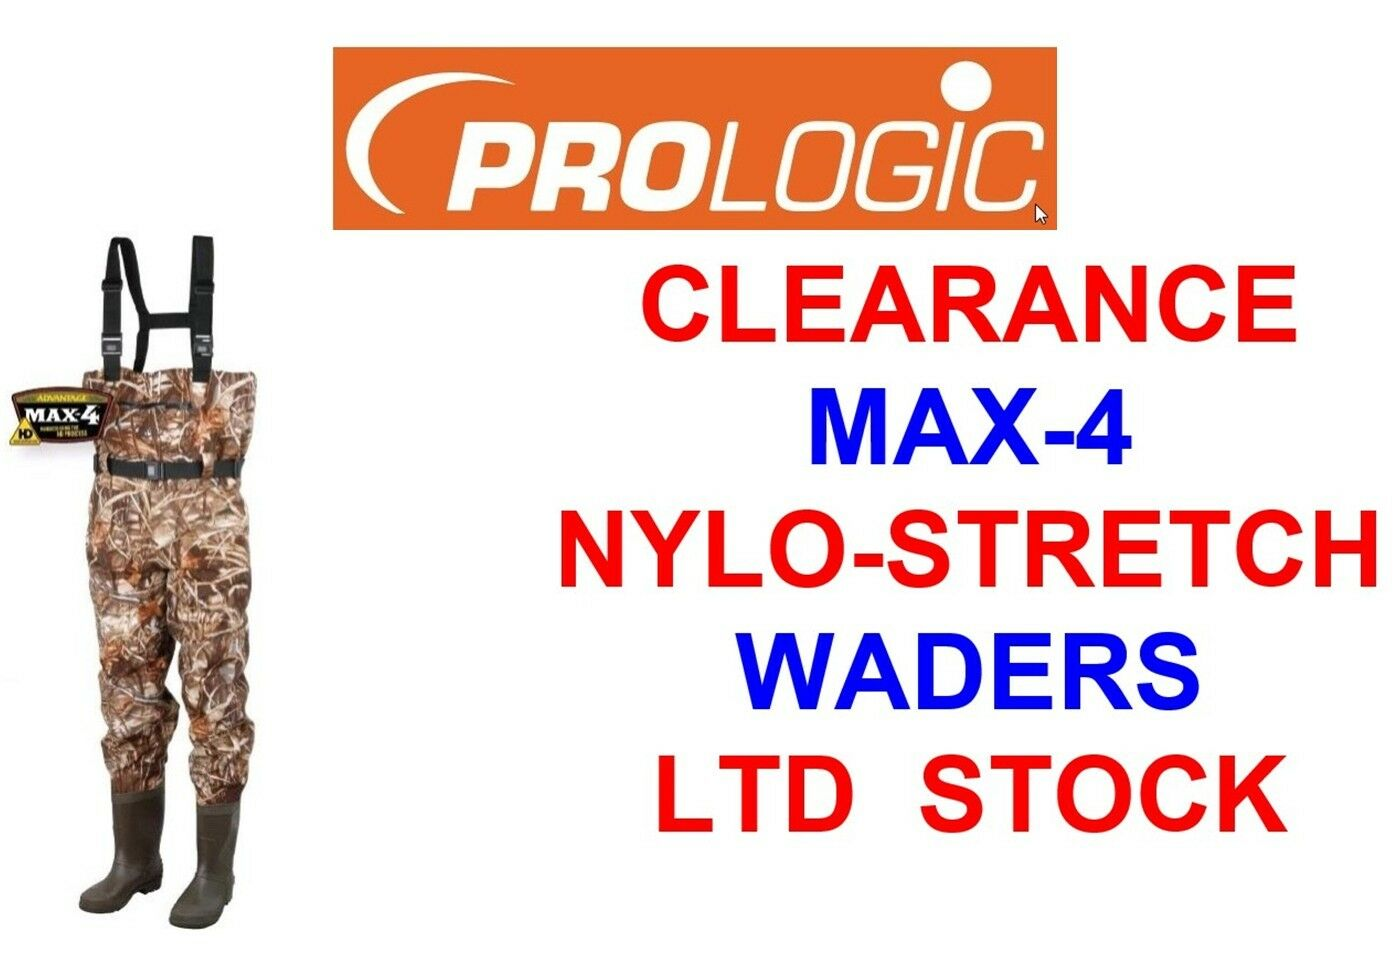 CLEARANCE PROLOGIC MAX-4 NYLO STRETCH CHEST WADERS COARSE CARP FISHING HUNTING